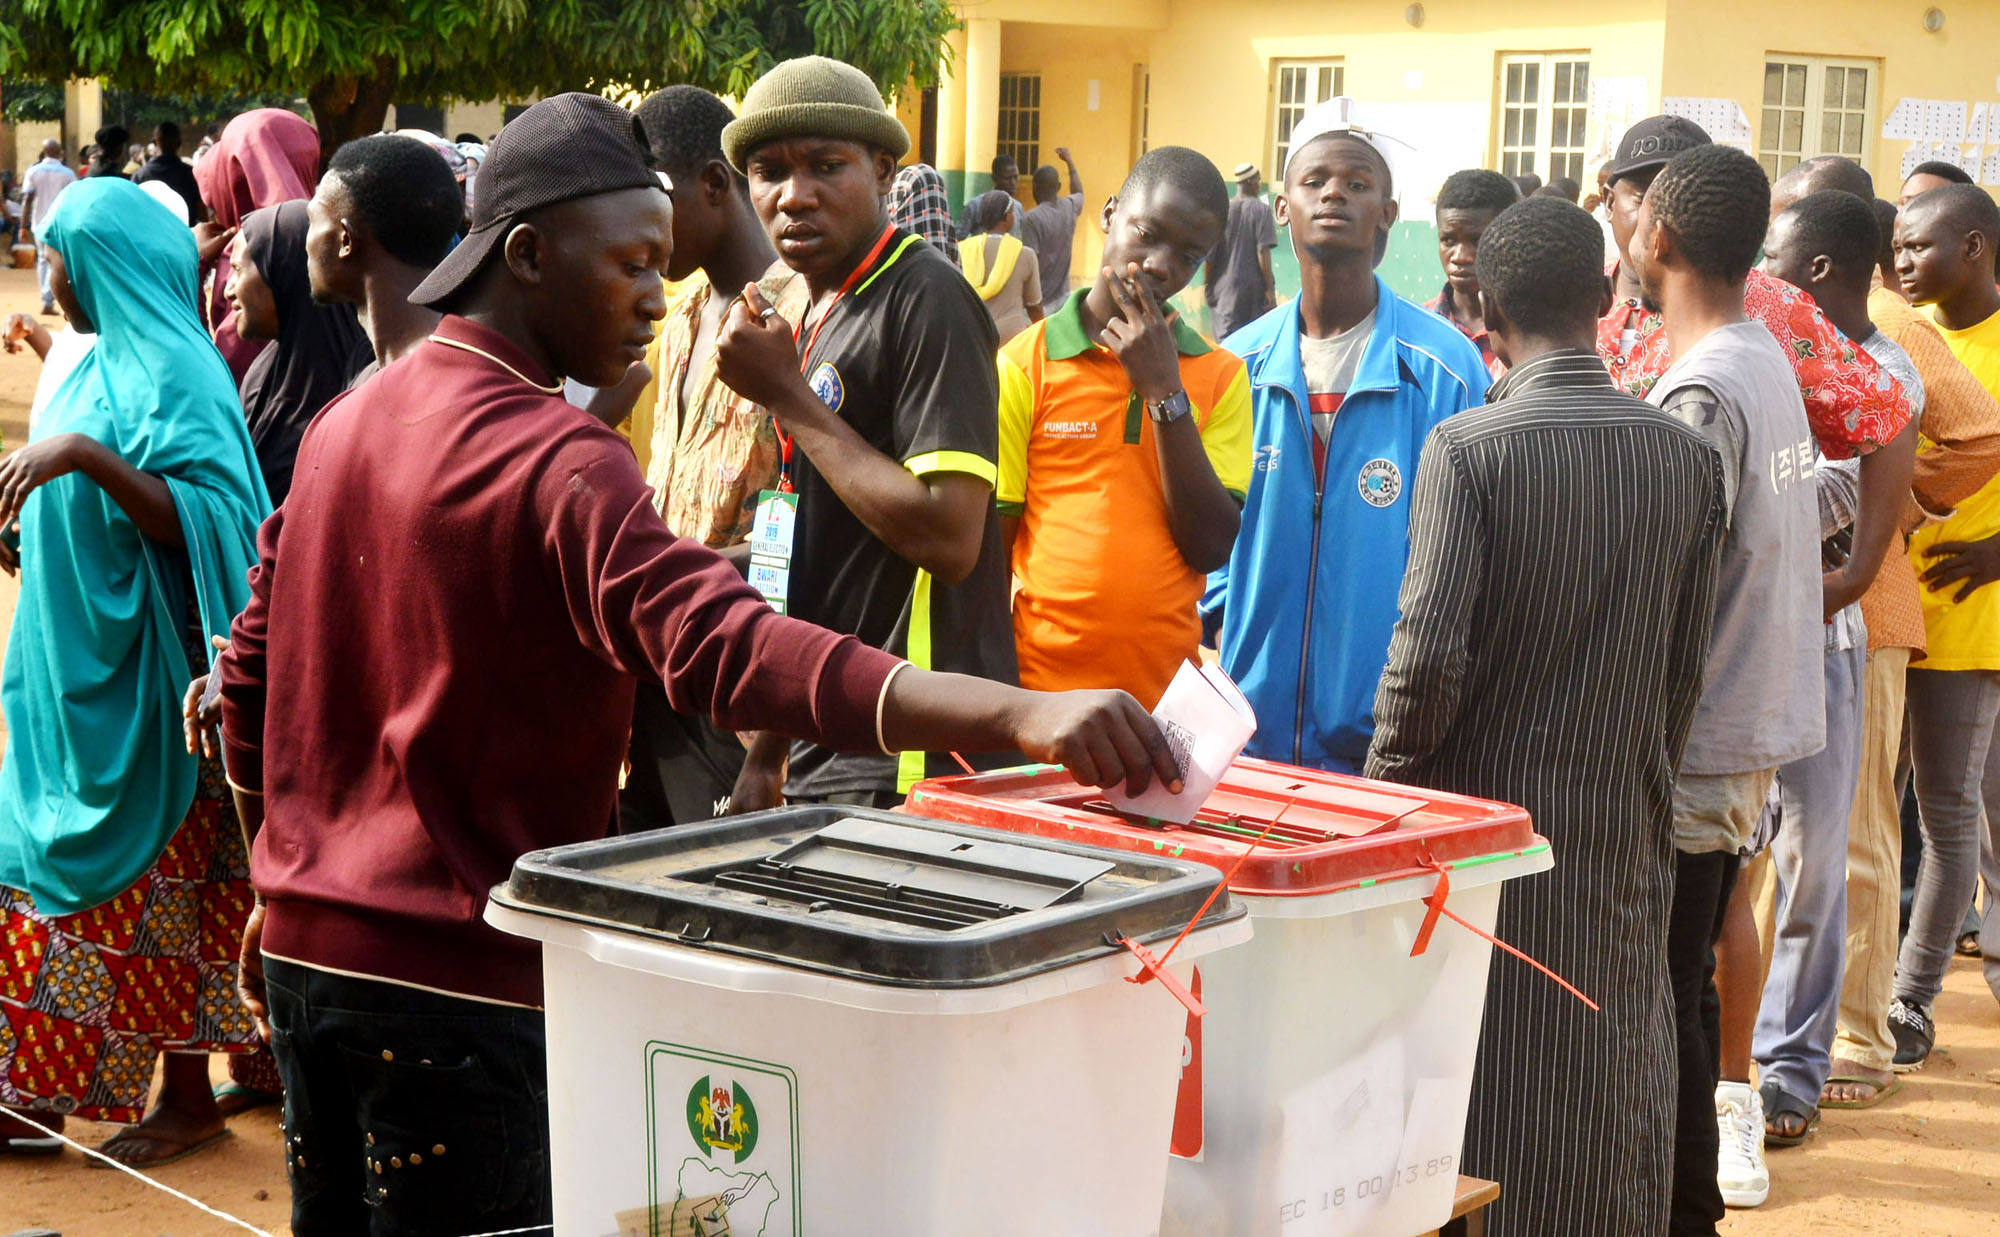 Kogi/Bayelsa Polls: YIAGA raises concerns over alleged voter inducement, low campaigns - Premium Times